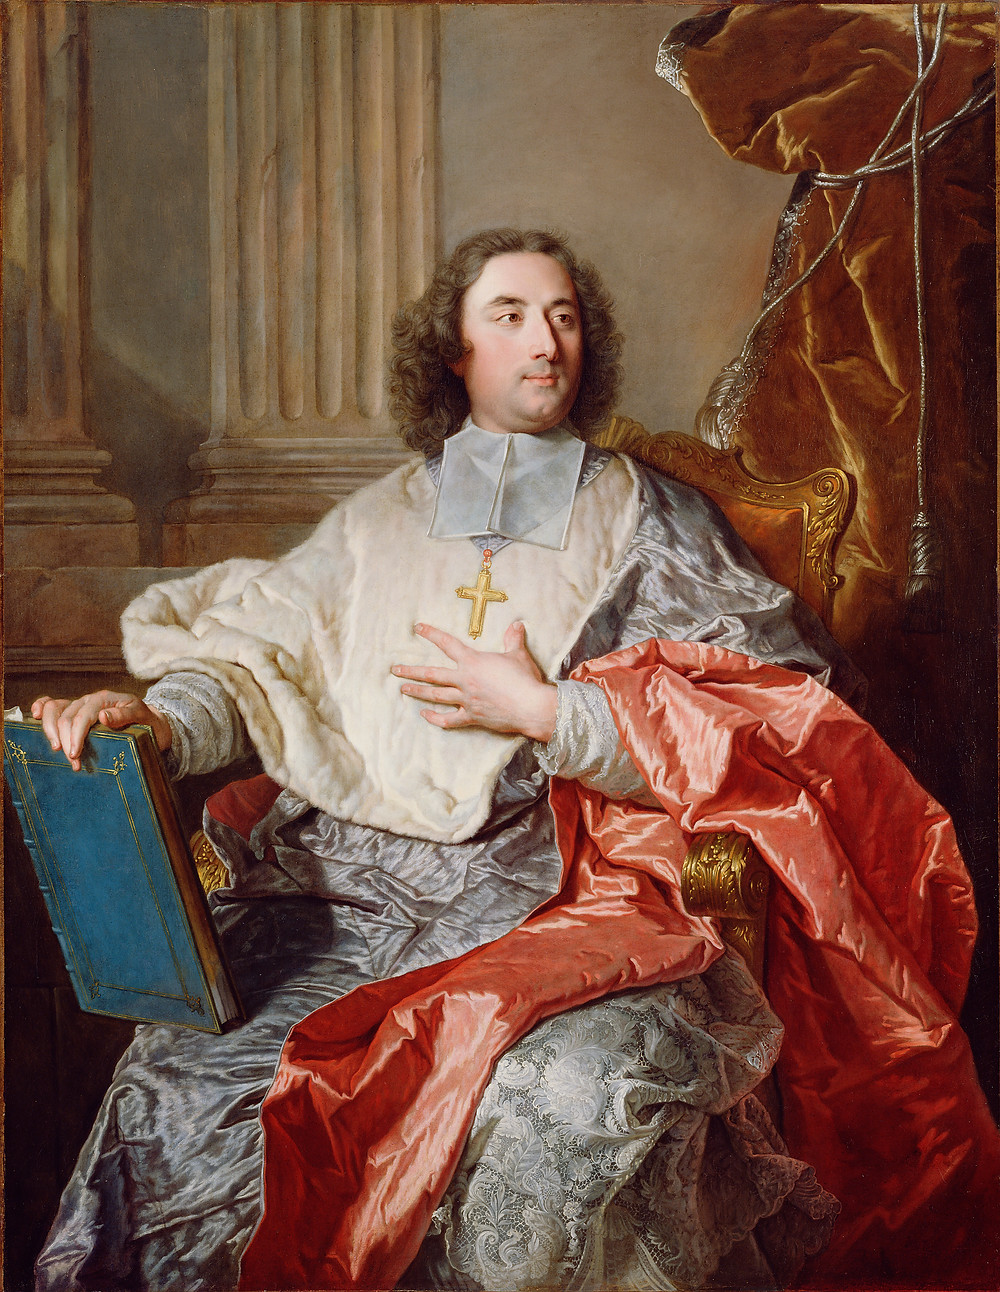 Hyacinthe Rigaud, Portrait de Charles de Saint-Albin, 1723-1724, États-Unis, Los Angeles, The J. Paul Getty Museum, inv. 88.PA.136